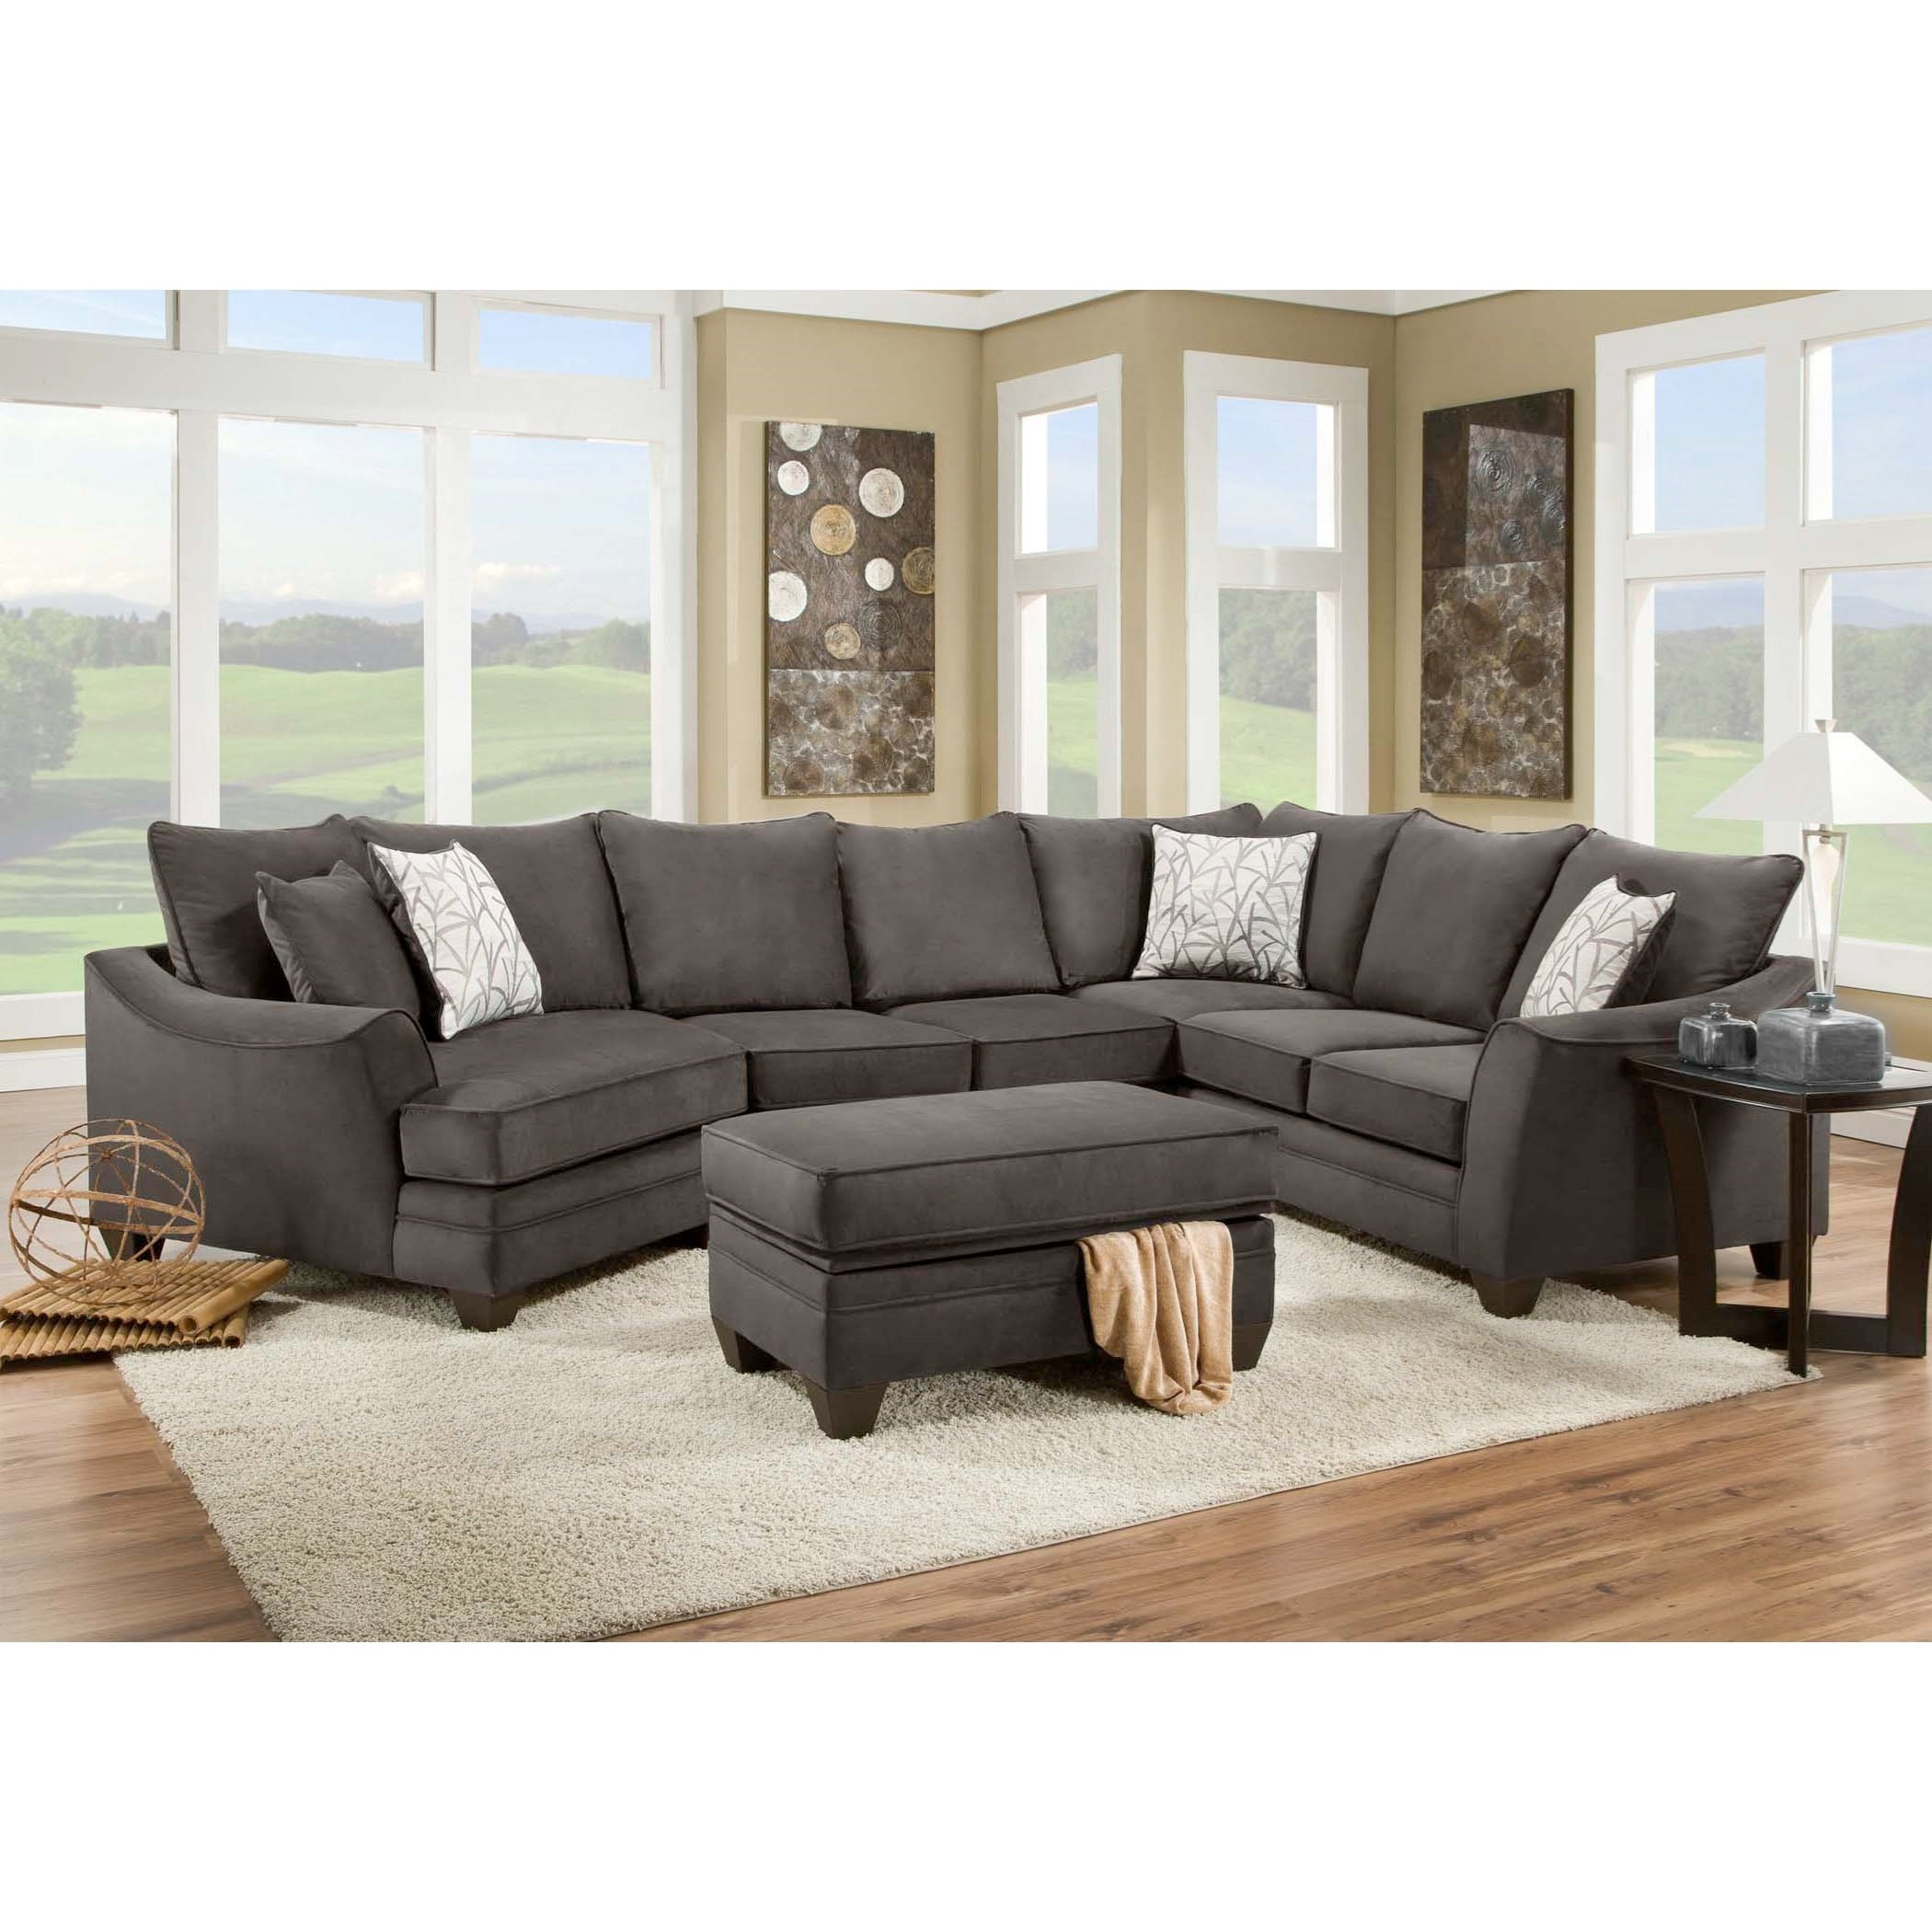 American furniture 3810 sectional sofa that seats 5 with for American home furniture menaul